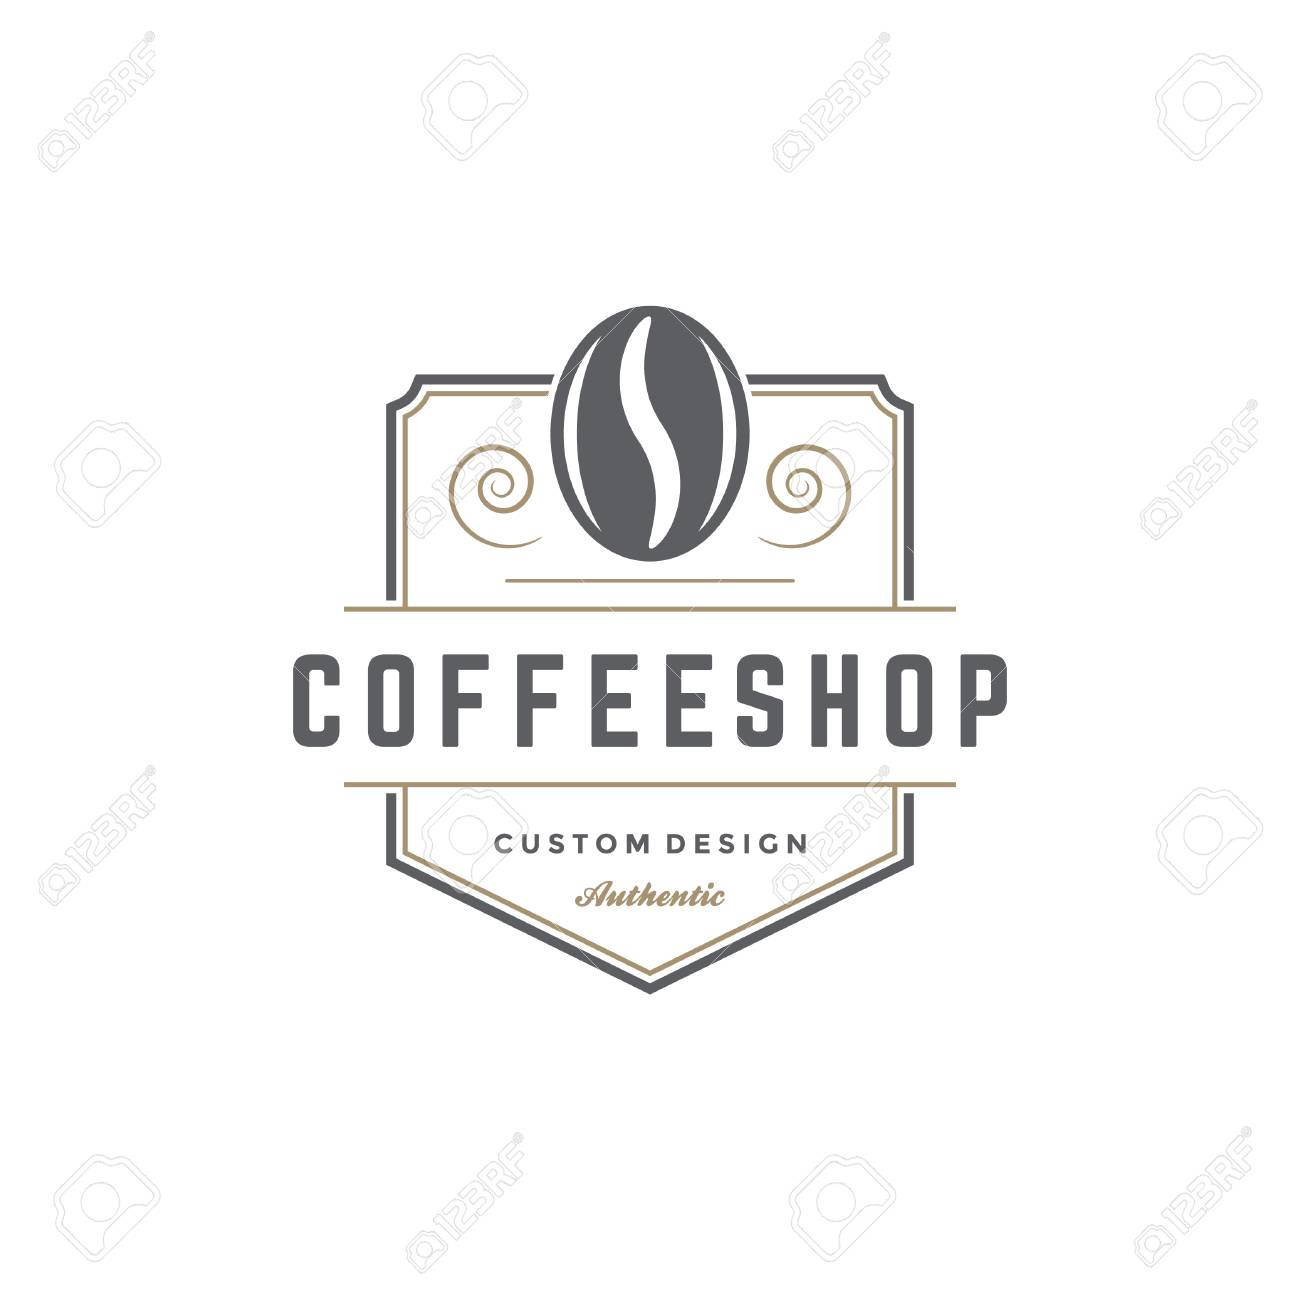 Coffee Shop Logo Template Bean Silhouette Isolated On White